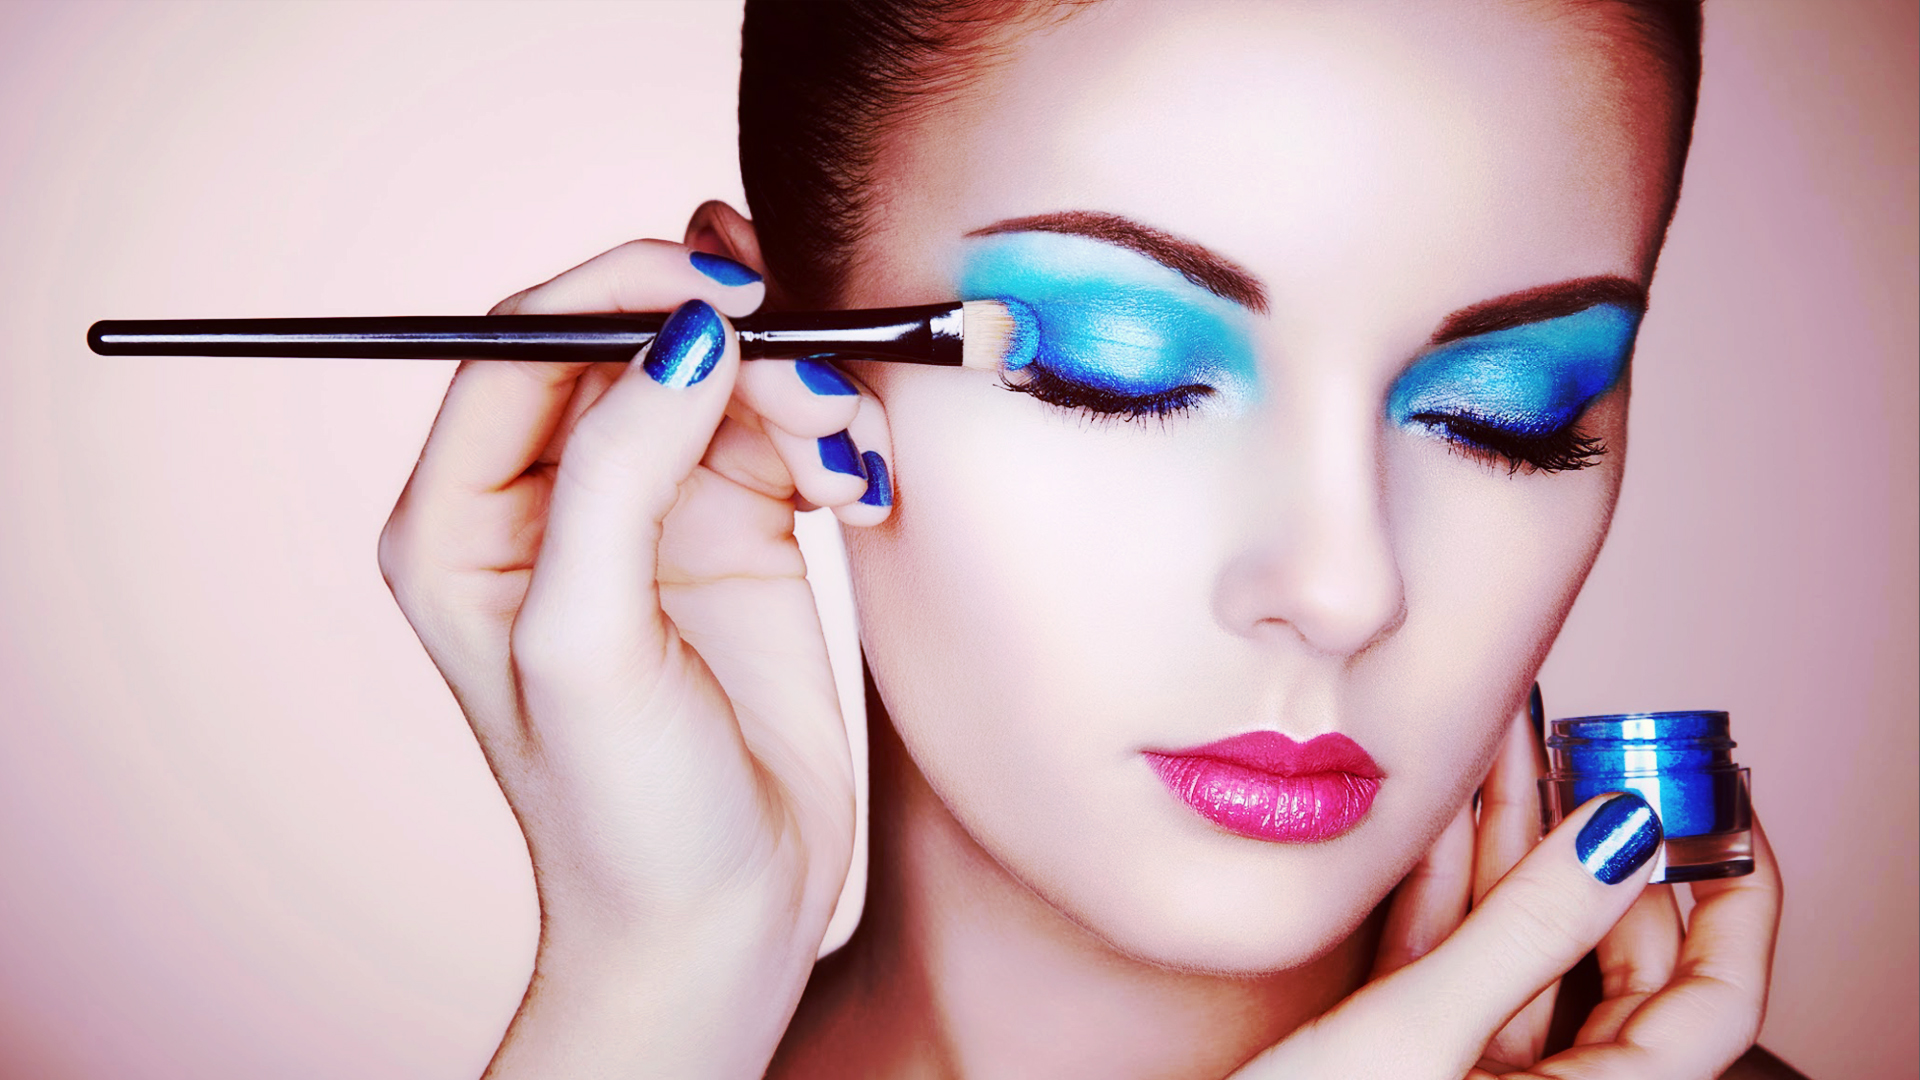 20 fantastic hd makeup wallpapers hdwallsourcecom